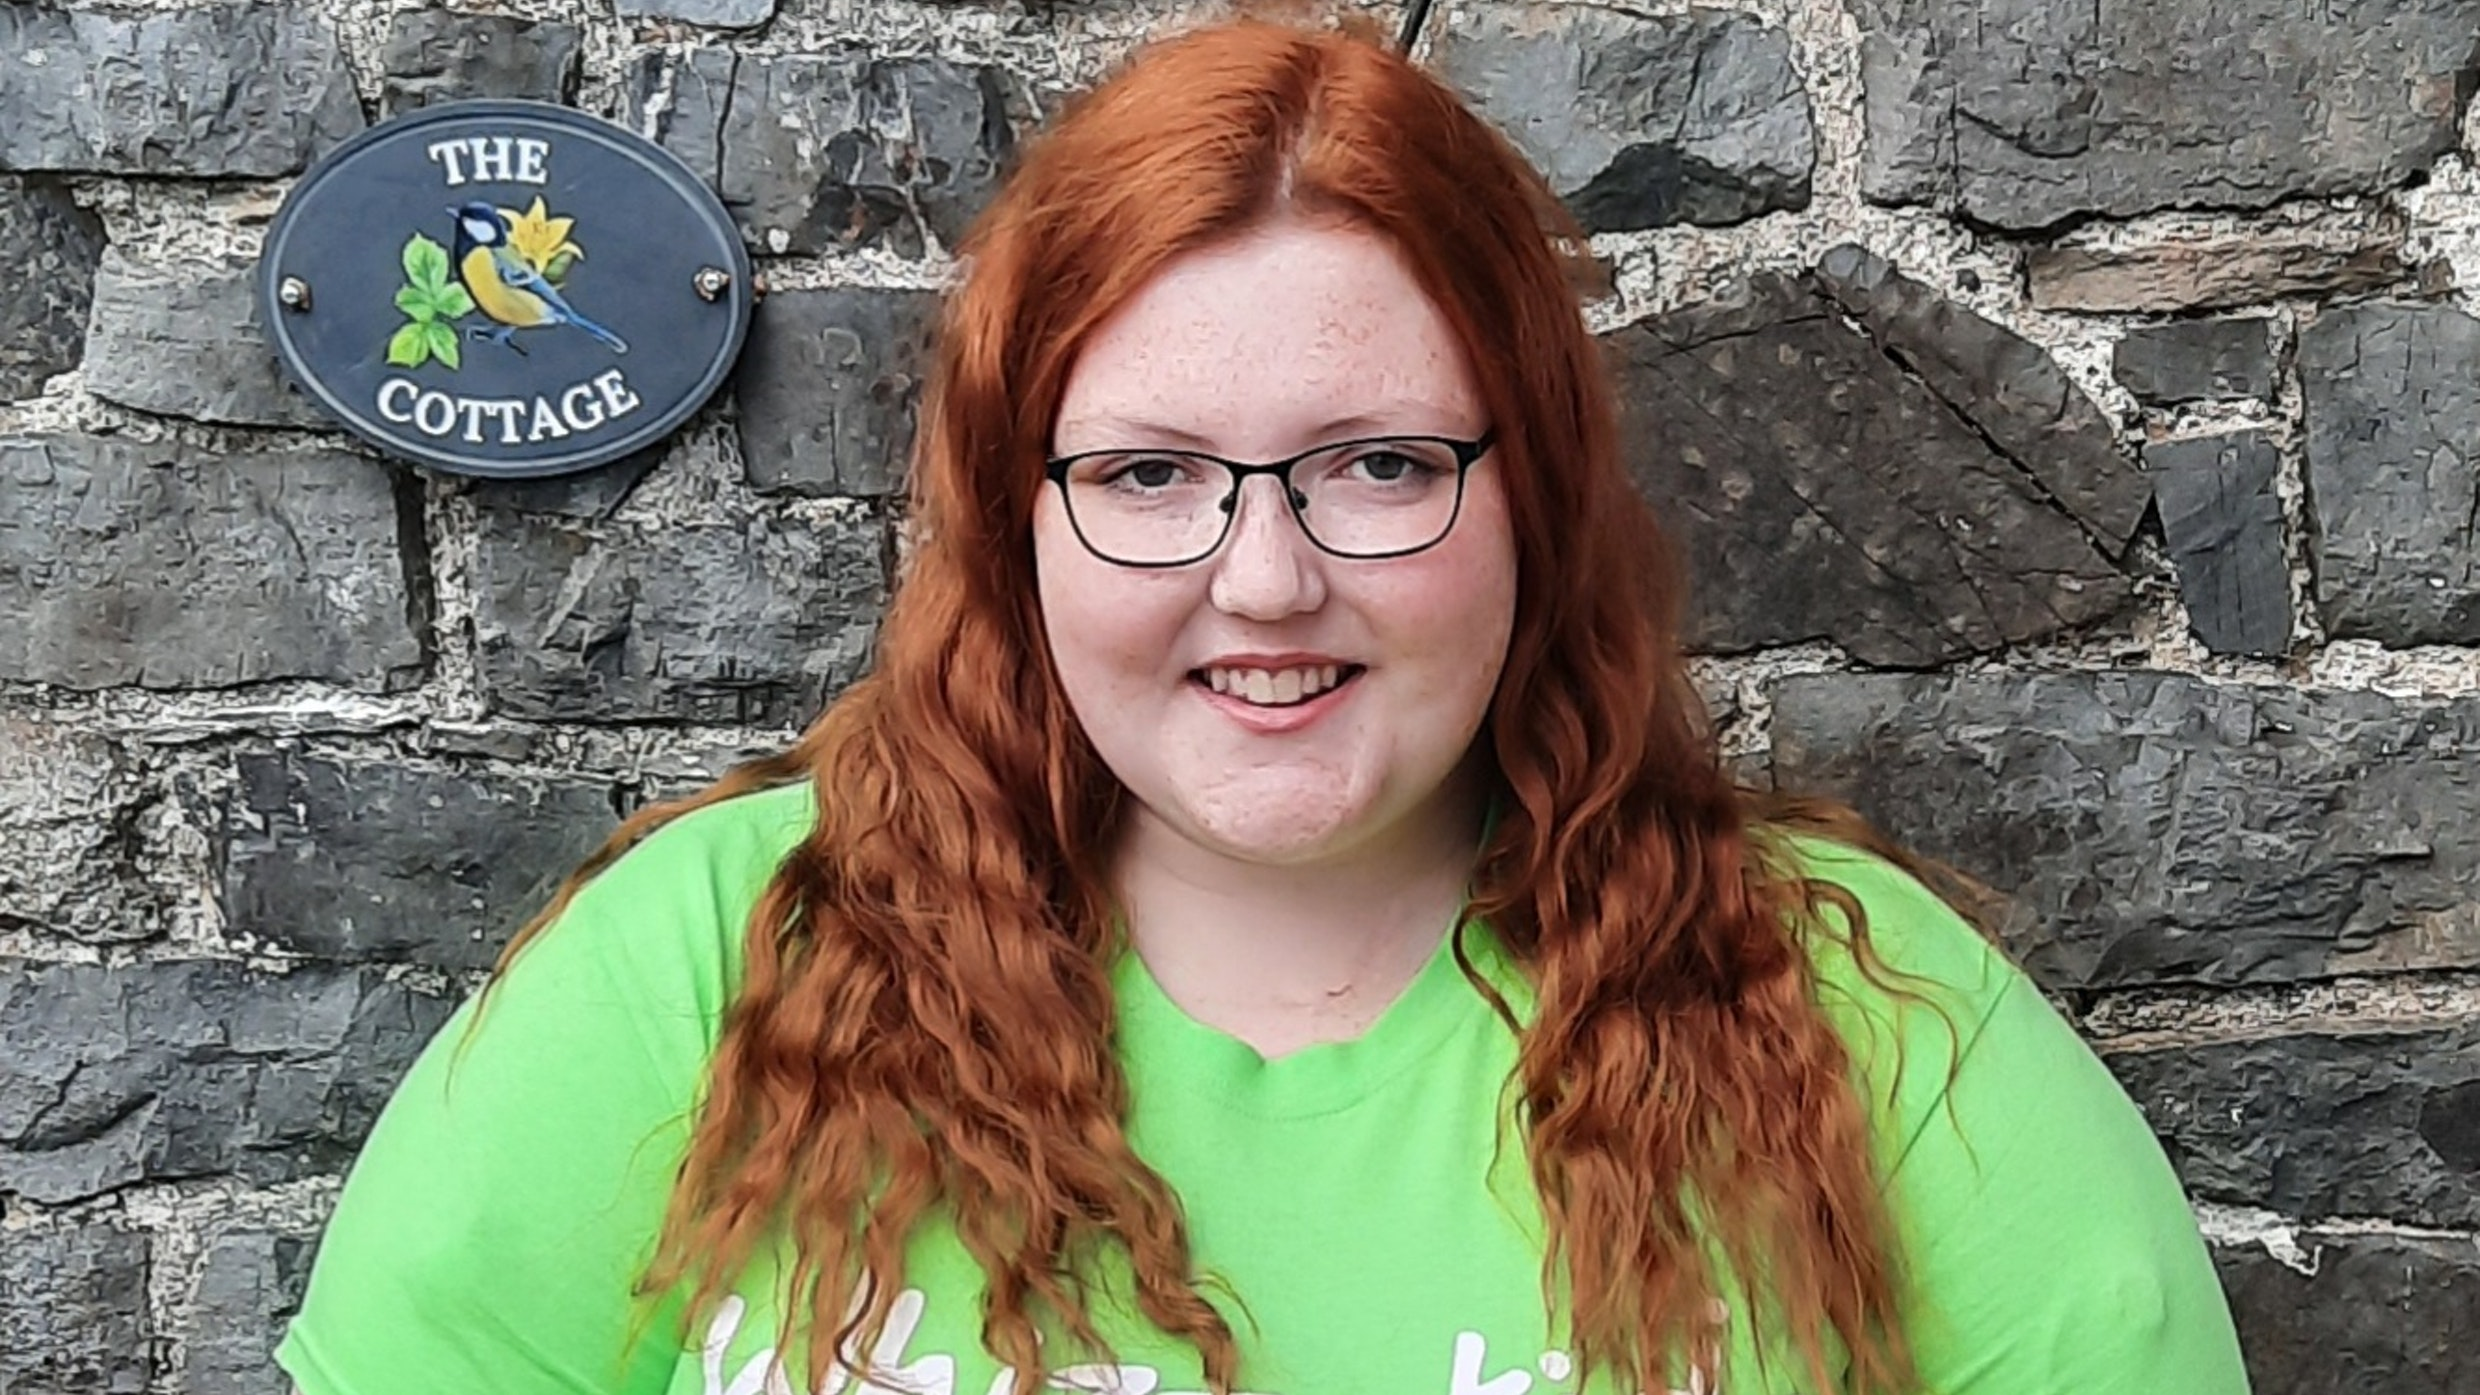 Sophie poses in a green Whizz-Kidz t-shirt